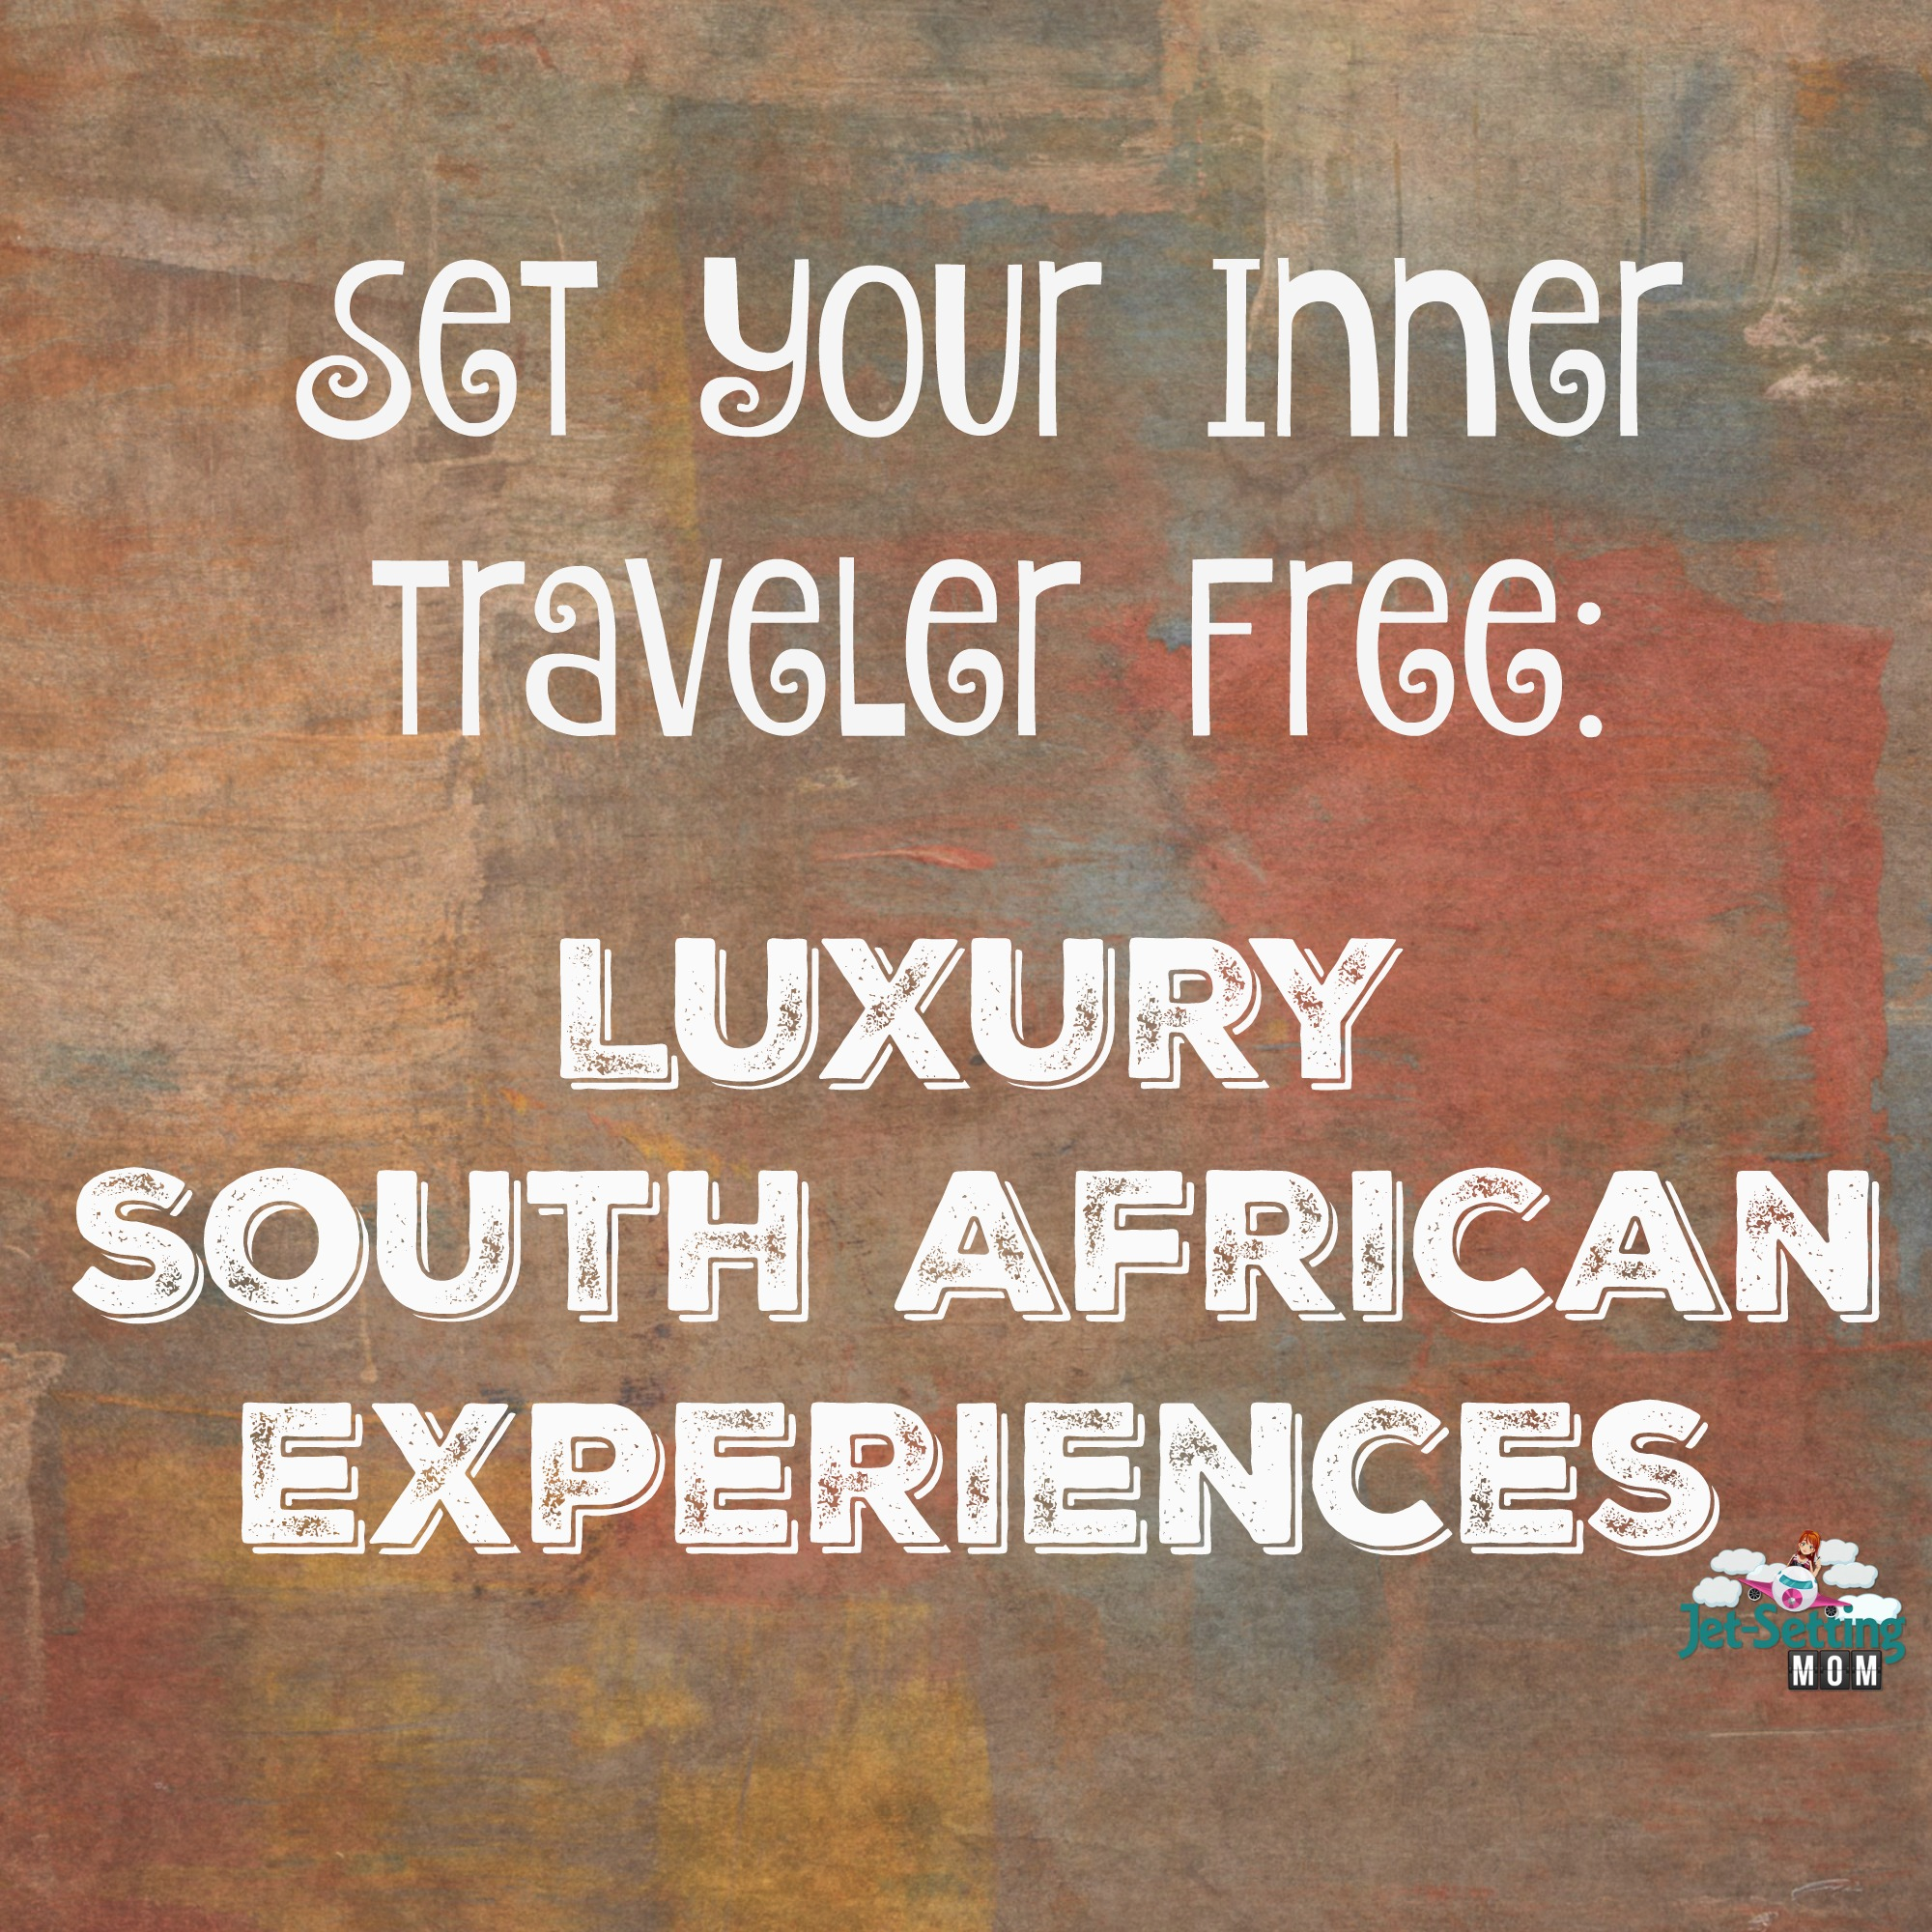 Luxury South African Experiences